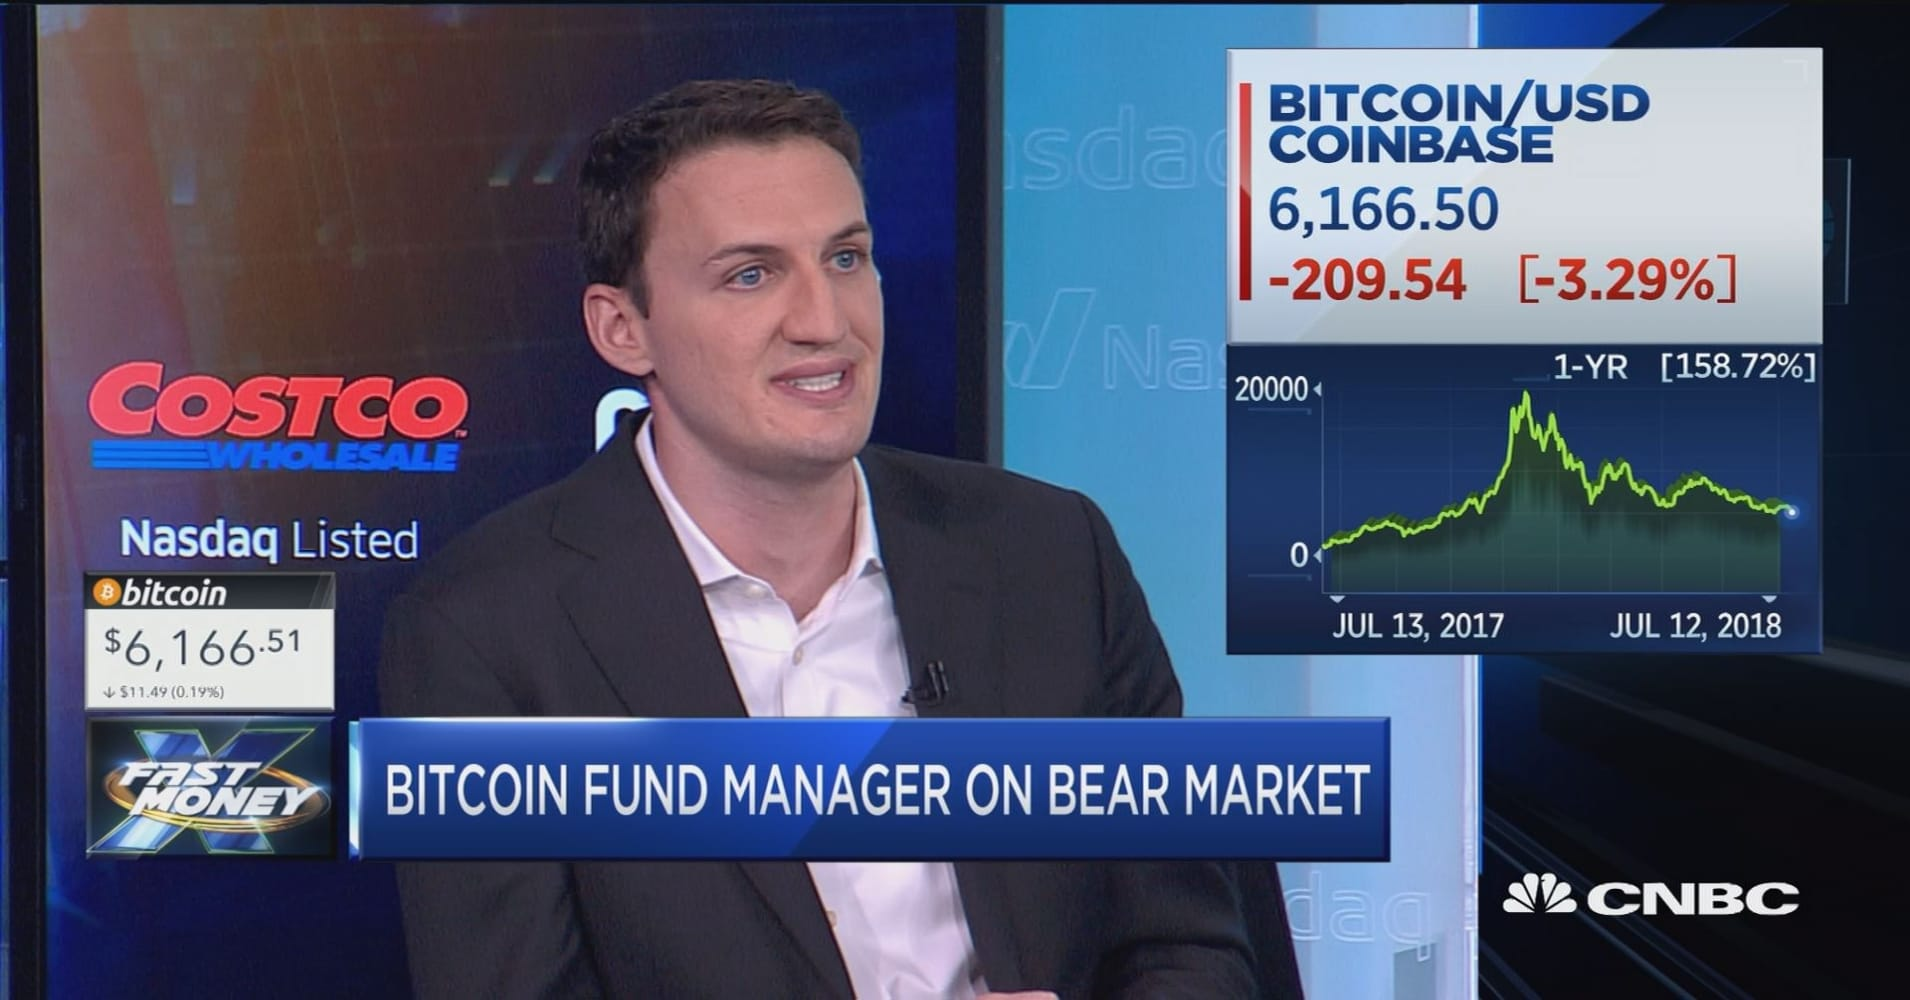 Bitcoin fund manager's crypto advice to his mom